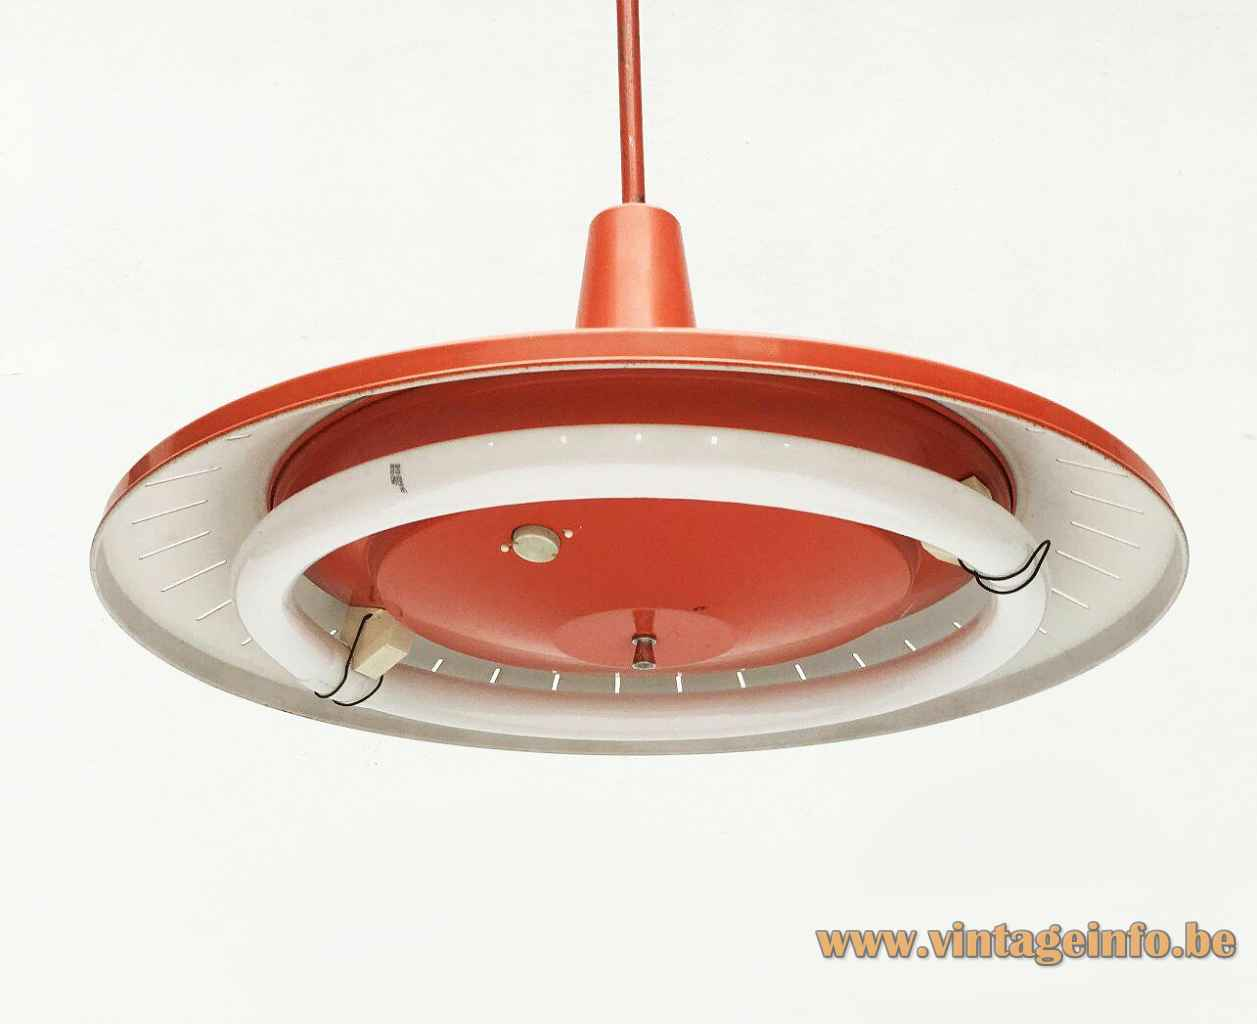 Van Haute orange pendant lamp round metal disc lampshade elongated slots circular fluorescent tube 1960s Belgium